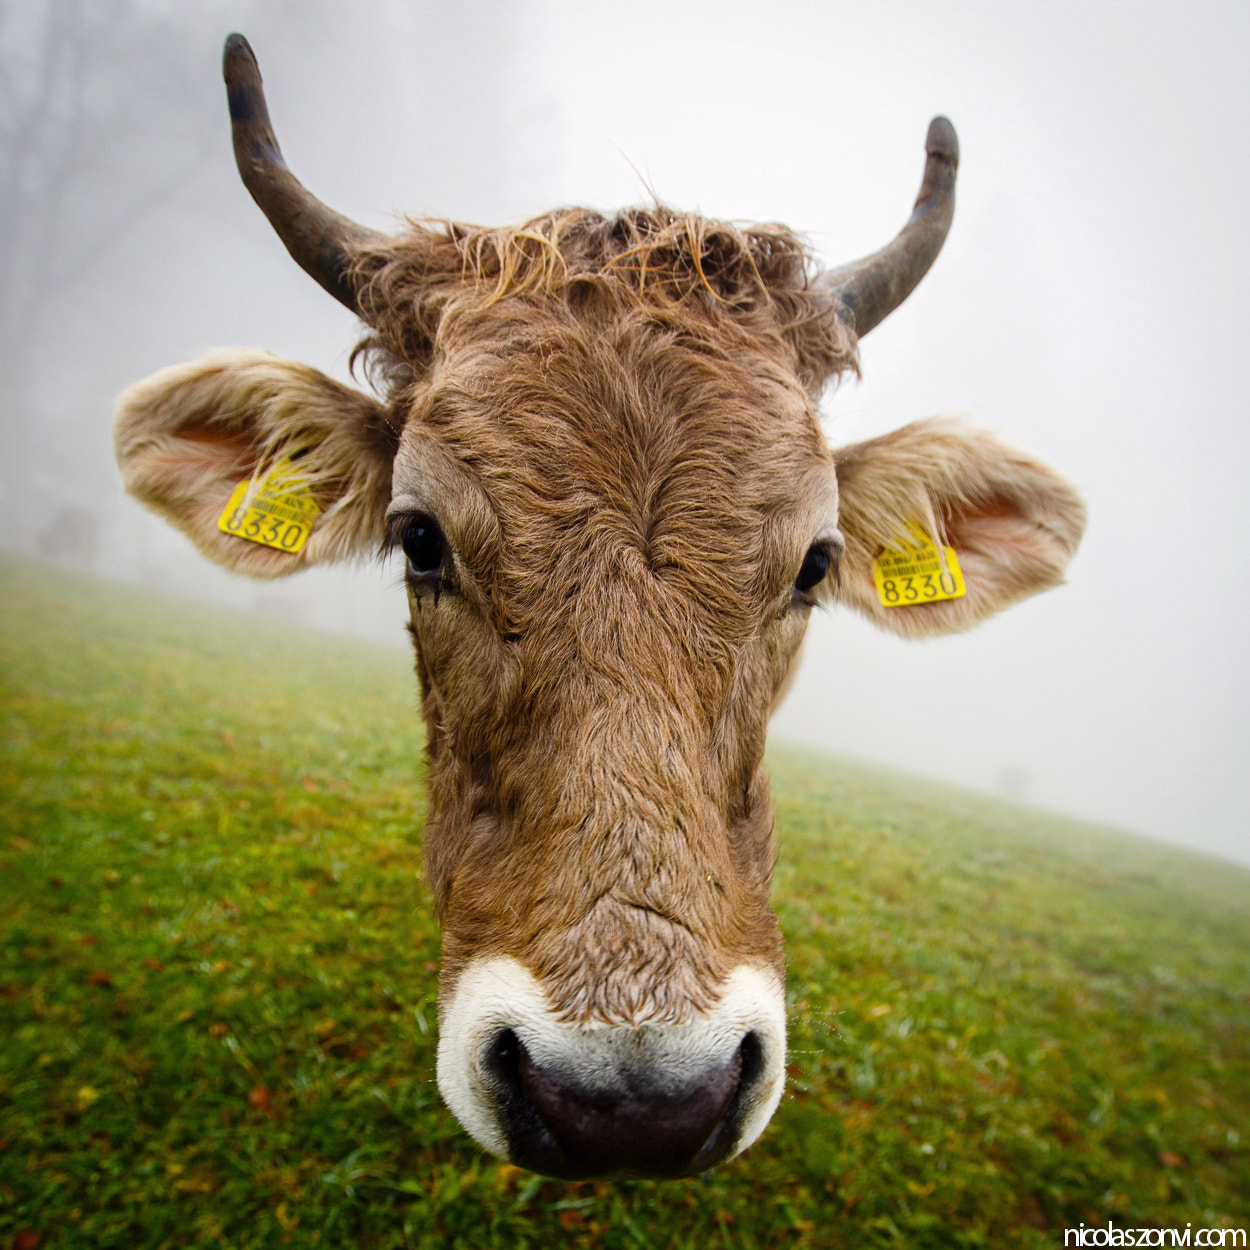 Photograph The Cow by Nicolas Zonvi on 500px